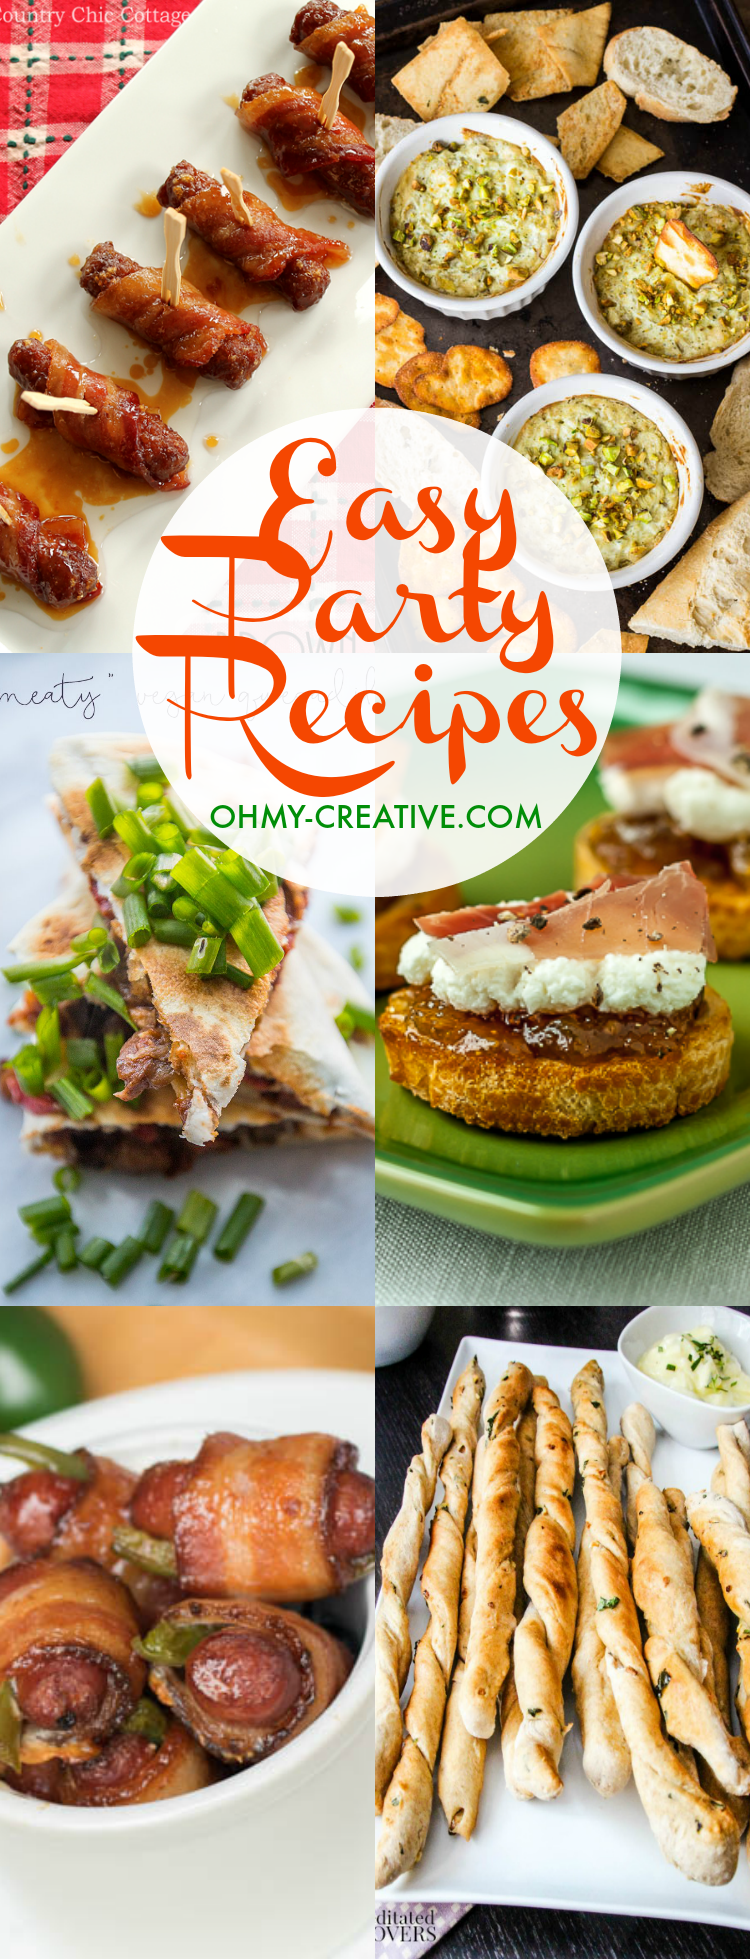 Easy Party Recipes for any occasion or for the holidays!  |  OHMY-CREATIVE.COM